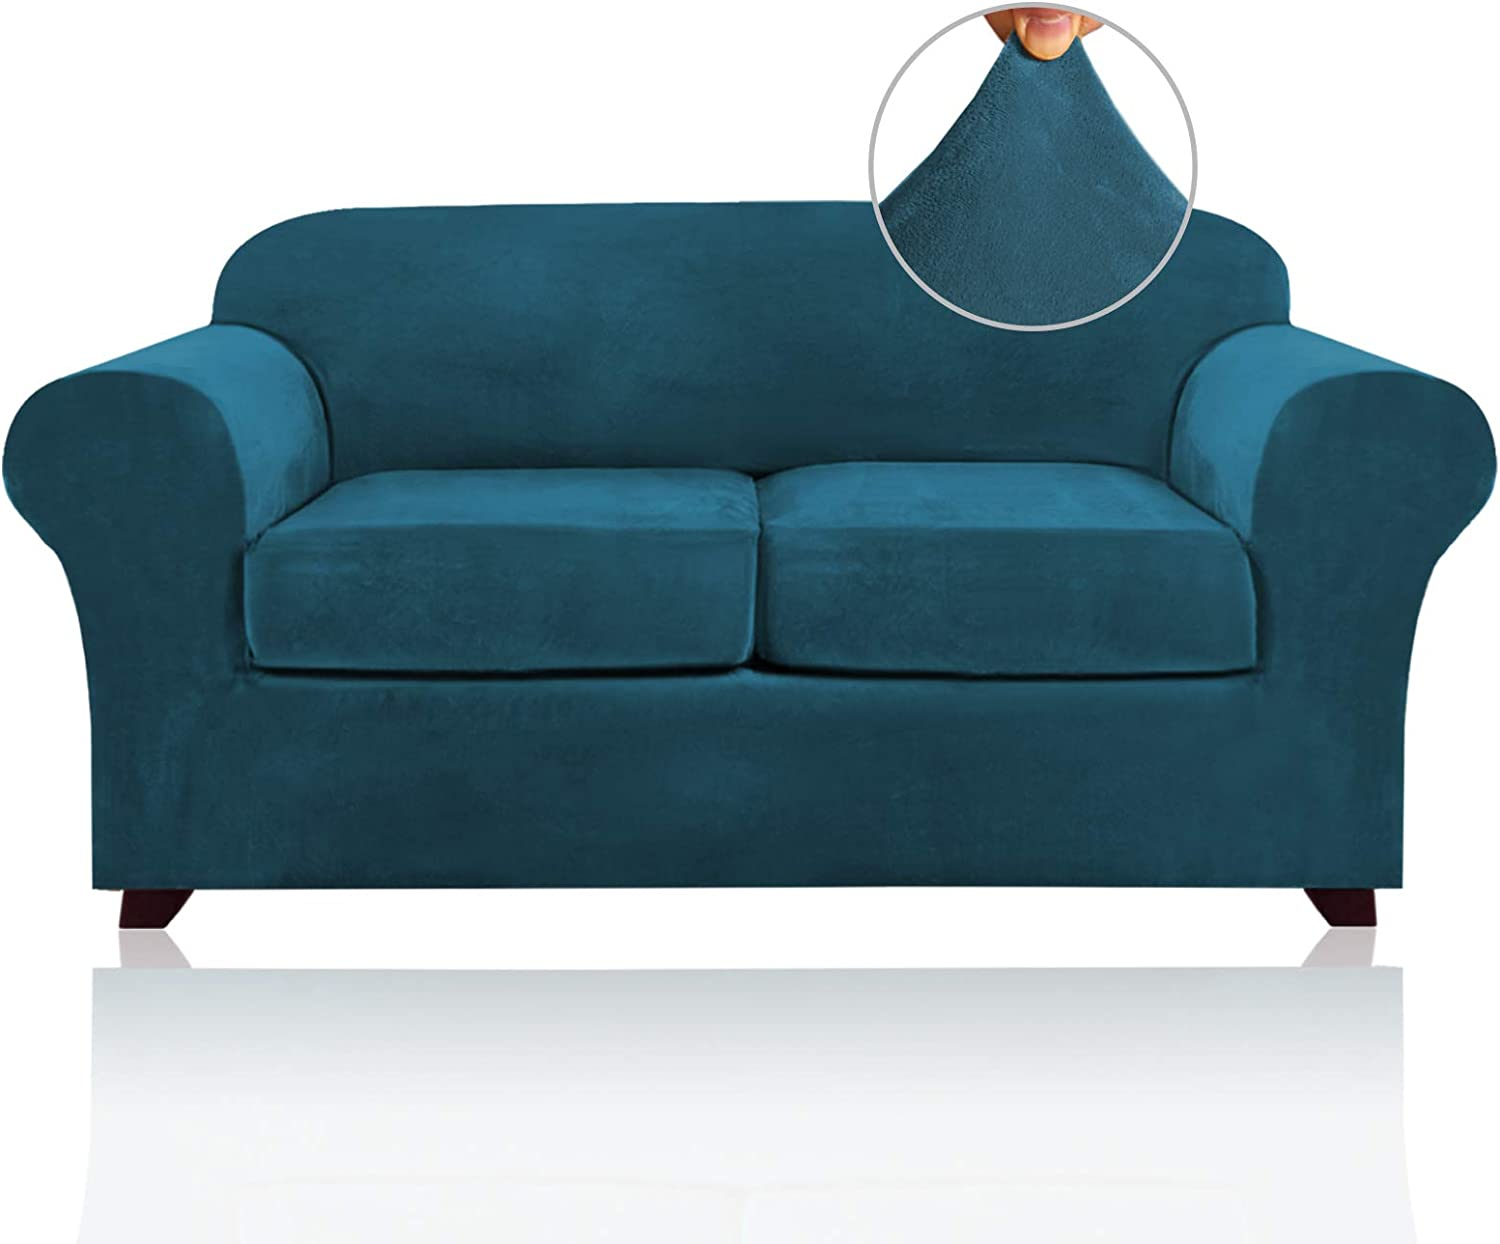 3 Pieces Sofa Covers Stretch Velvet Couch Covers for 2 Cushion Sofa Slipcovers Soft Sofa Slip Covers with 2 Non Slip Straps Furniture Covers with 2 Individual Seat Cushion Covers (Medium, Deep Teal)